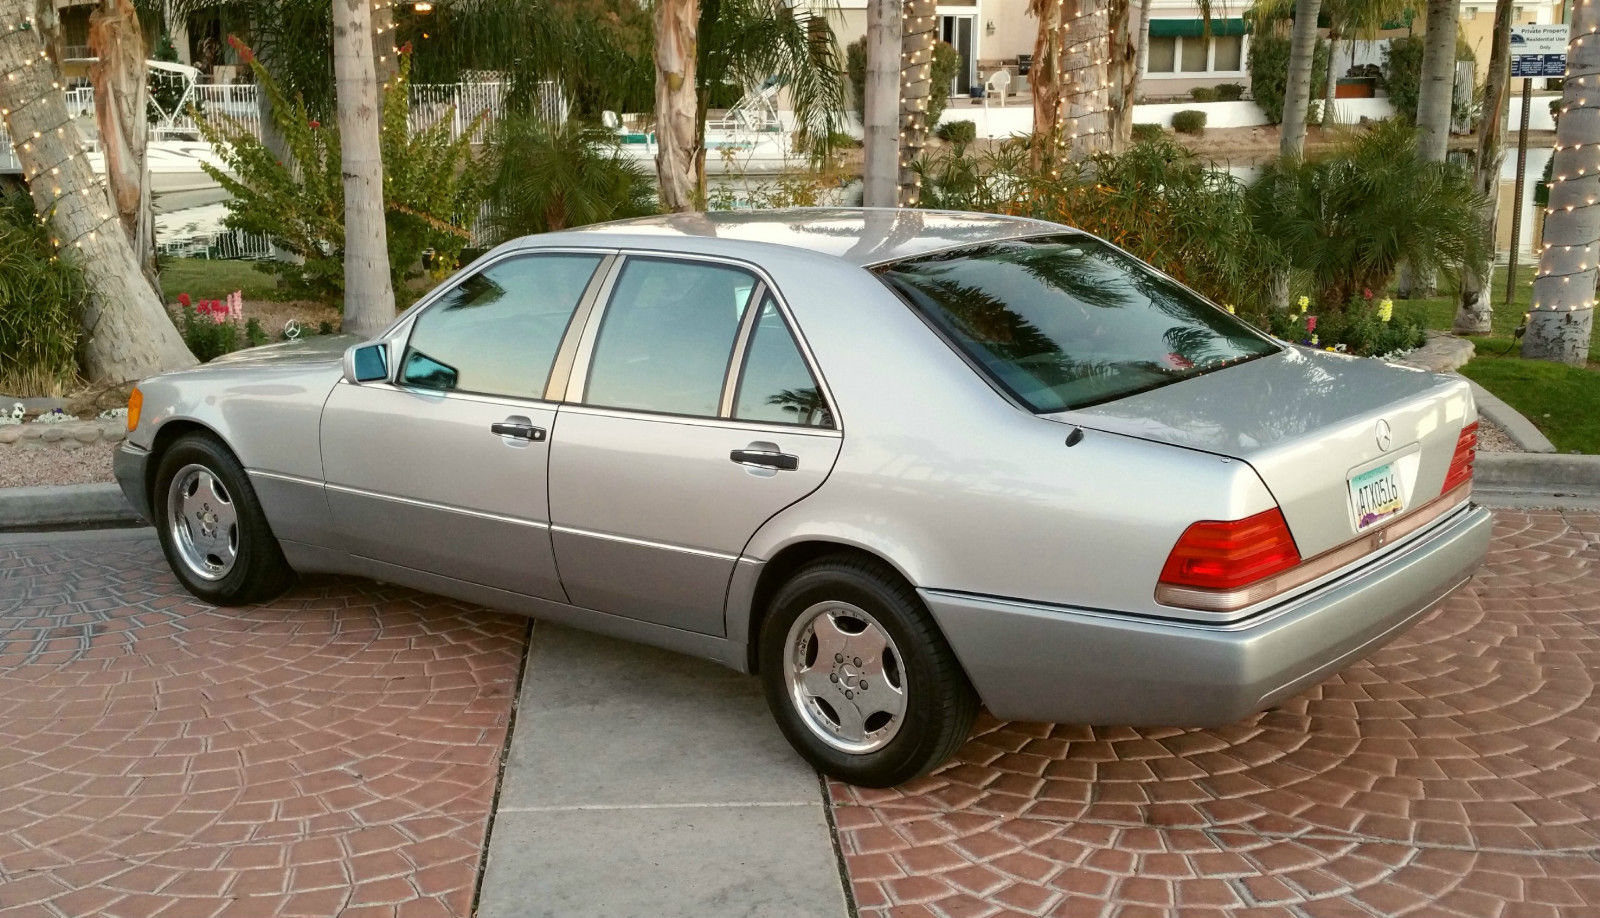 1992 mercedes benz 400se swb v8 silver black new tires for Mercedes benz 400 se